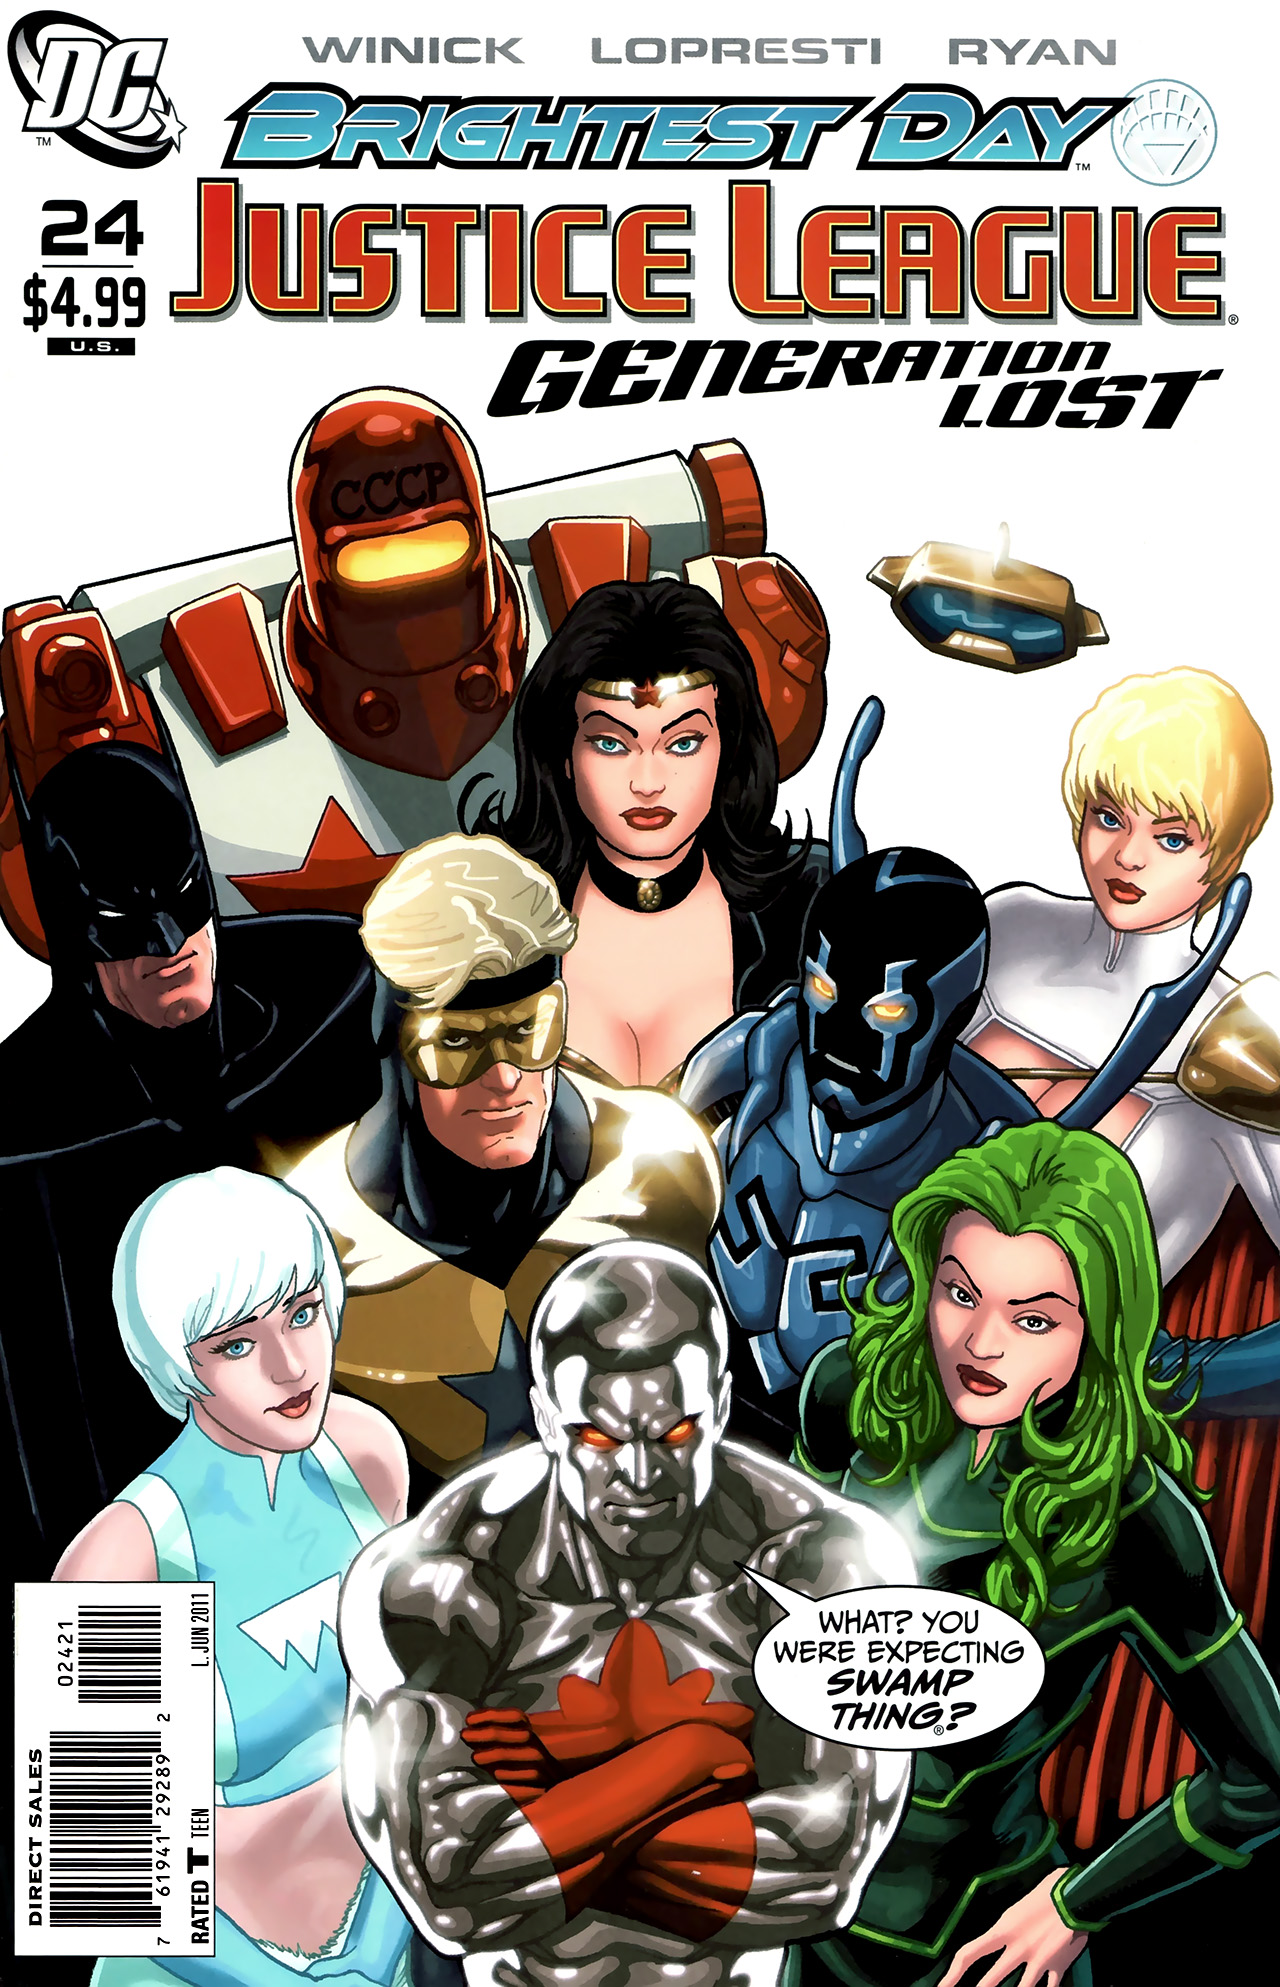 Read online Justice League: Generation Lost comic -  Issue #24 - 2